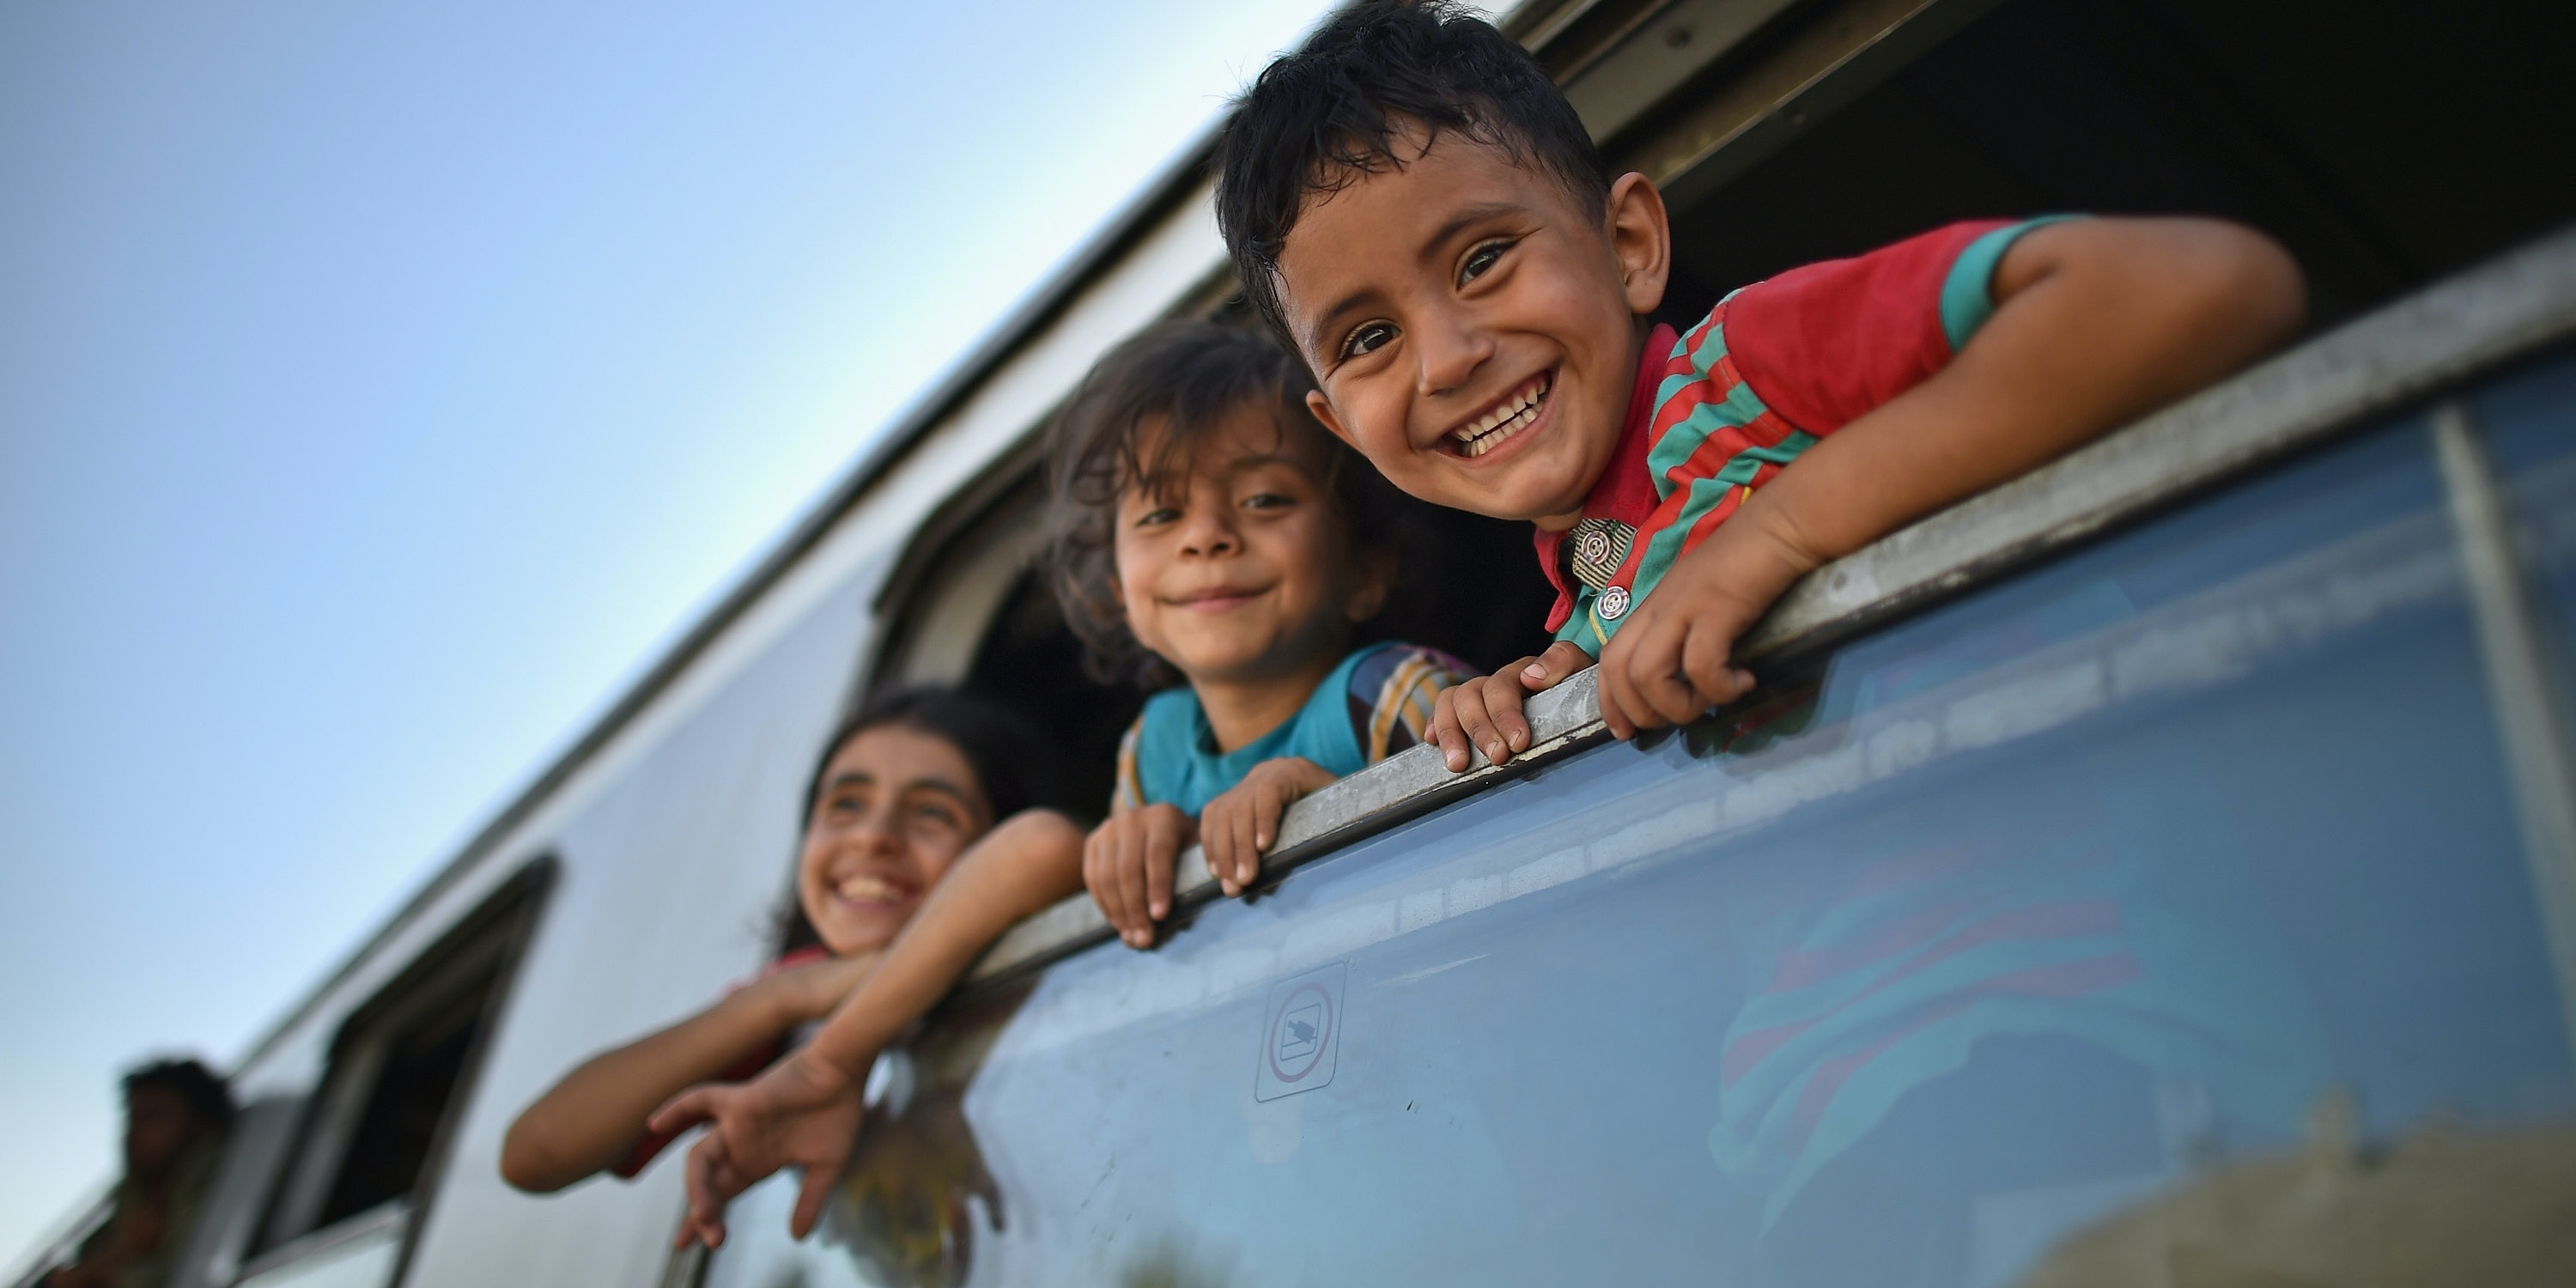 BELI MANASTIR, CROATIA - SEPTEMBER 18:  Young children smile a they look out of a train window as migrants board trains and busses at the train station in Beli Manastir, near Hungarian border on September 18, 2015 in Beli Manastir,Croatia. Officials are saying that they had no choice than to close eight road border crossings yesterday after more than 11,000 people entered the country since Hungary fenced off its border with Serbia earlier this week.  (Photo by Jeff J Mitchell/Getty Images)